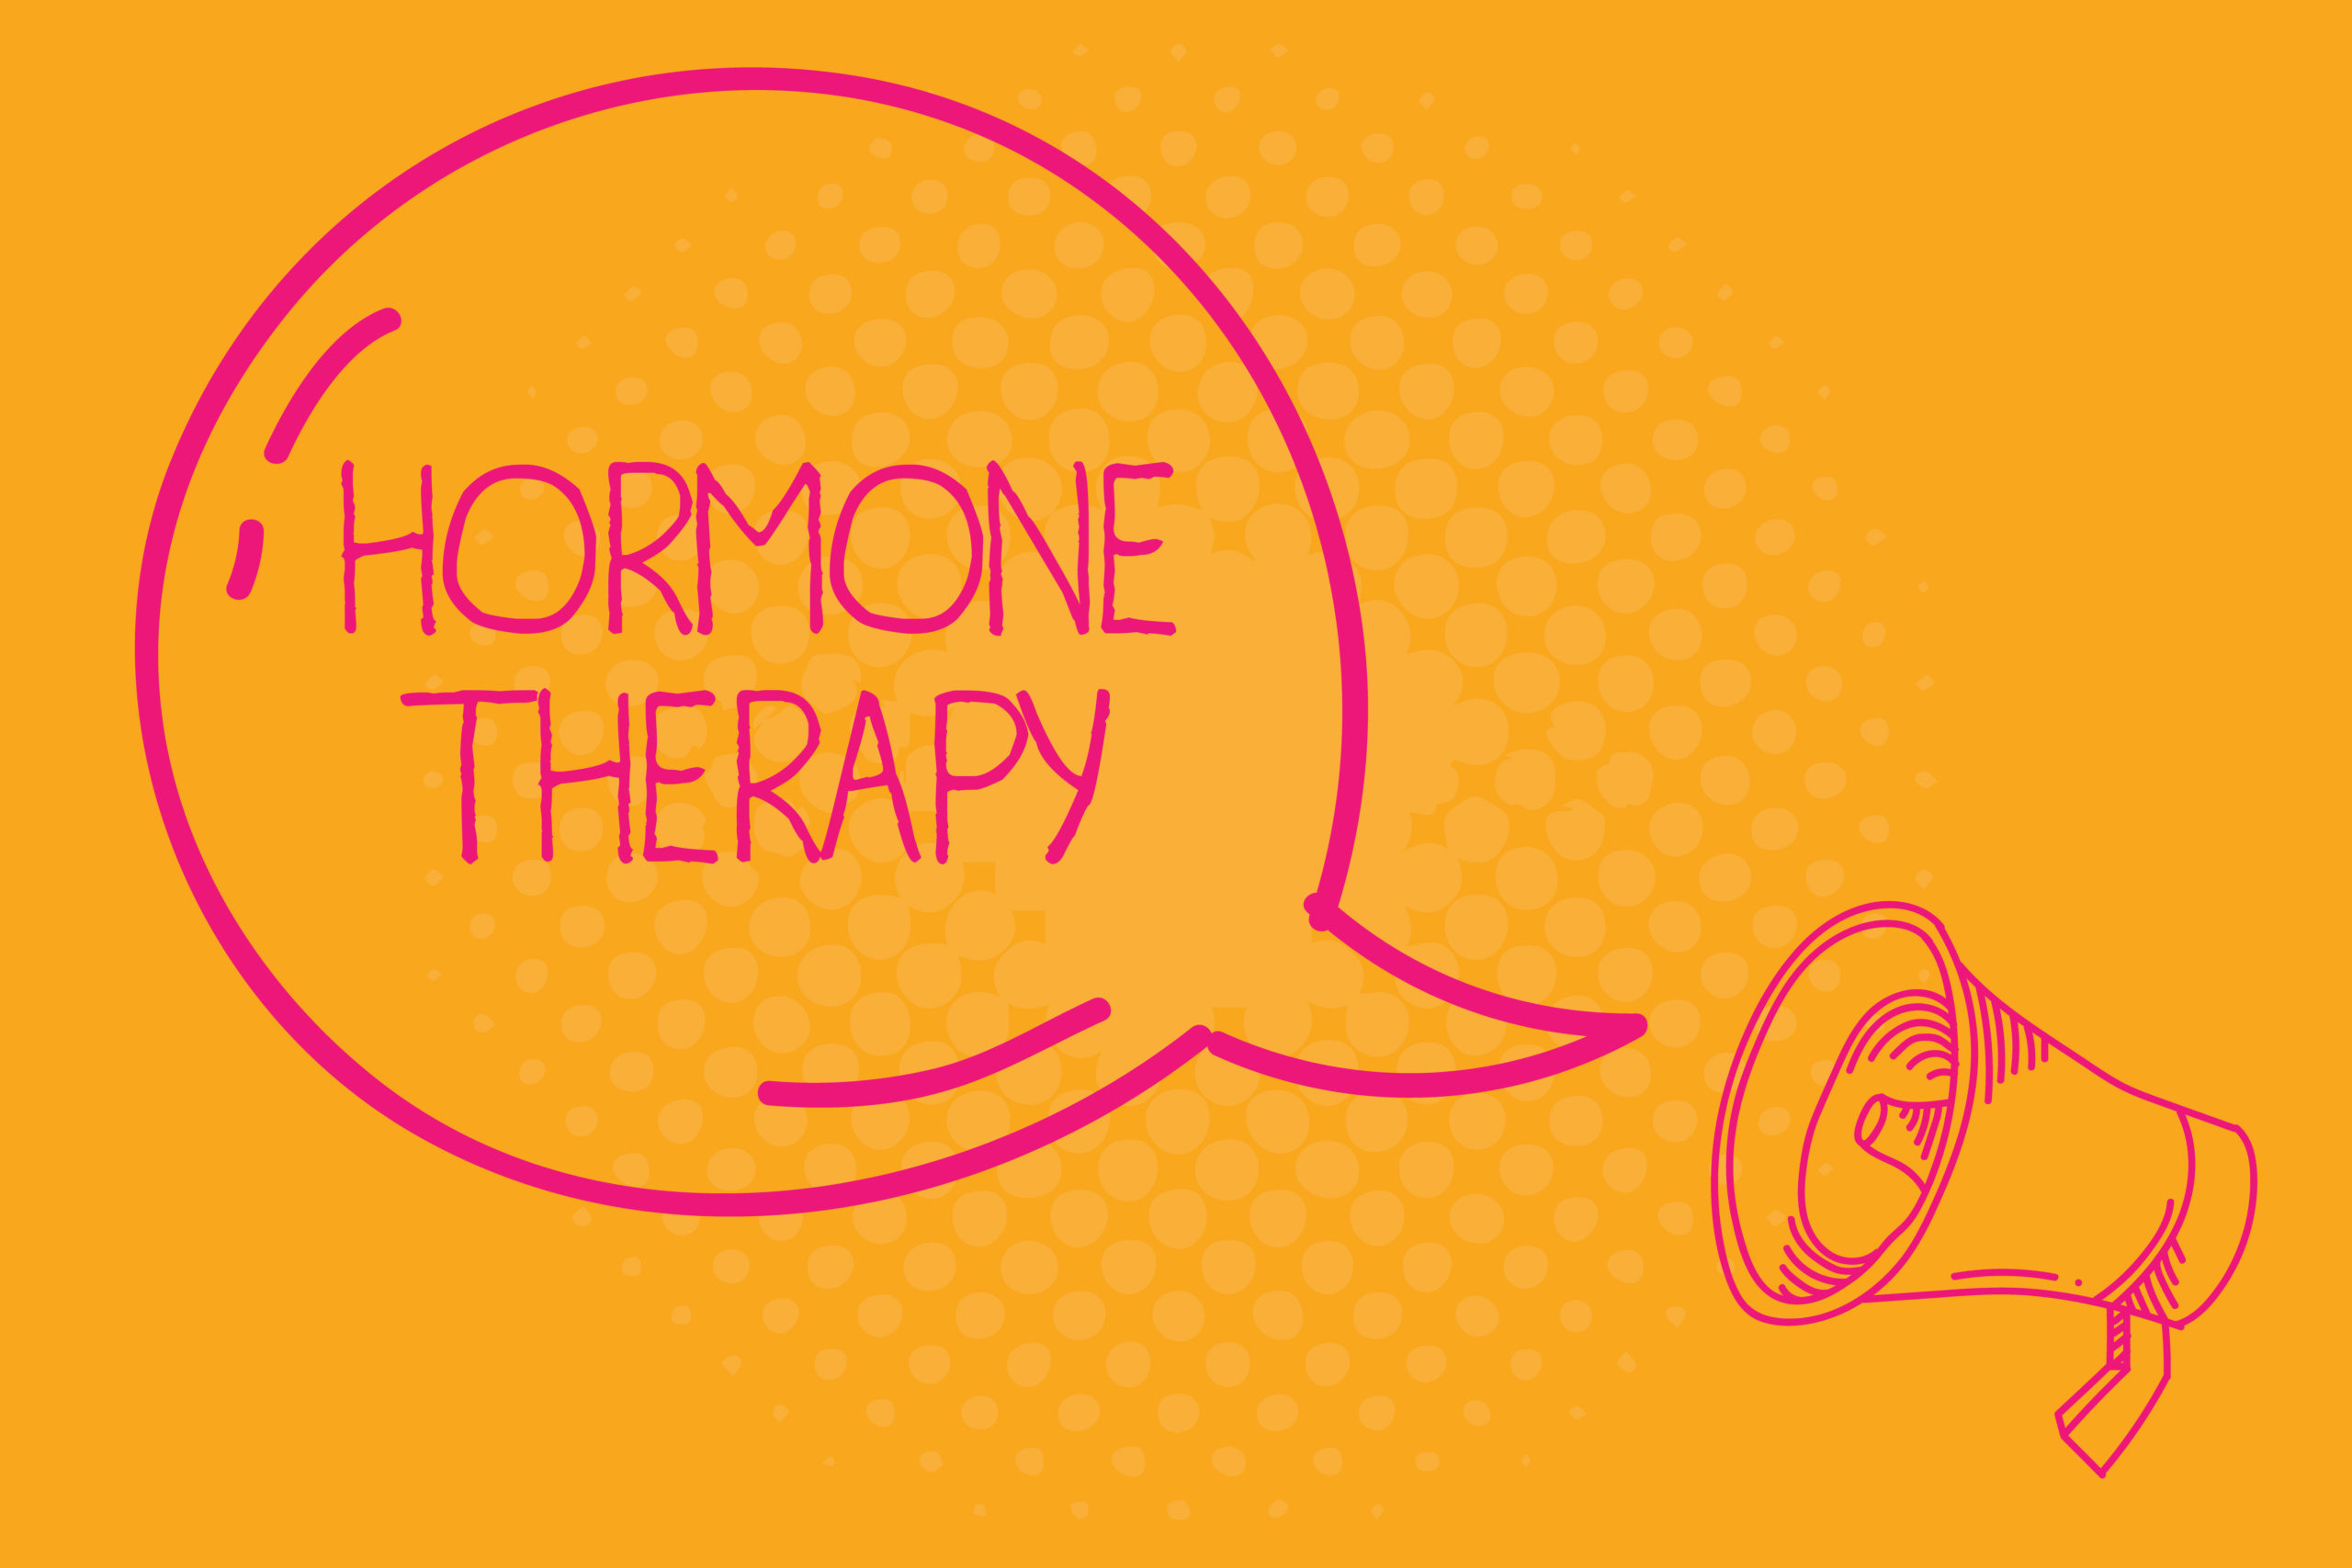 A megaphone with 'HORMONE THERAPY' in a speech bubble